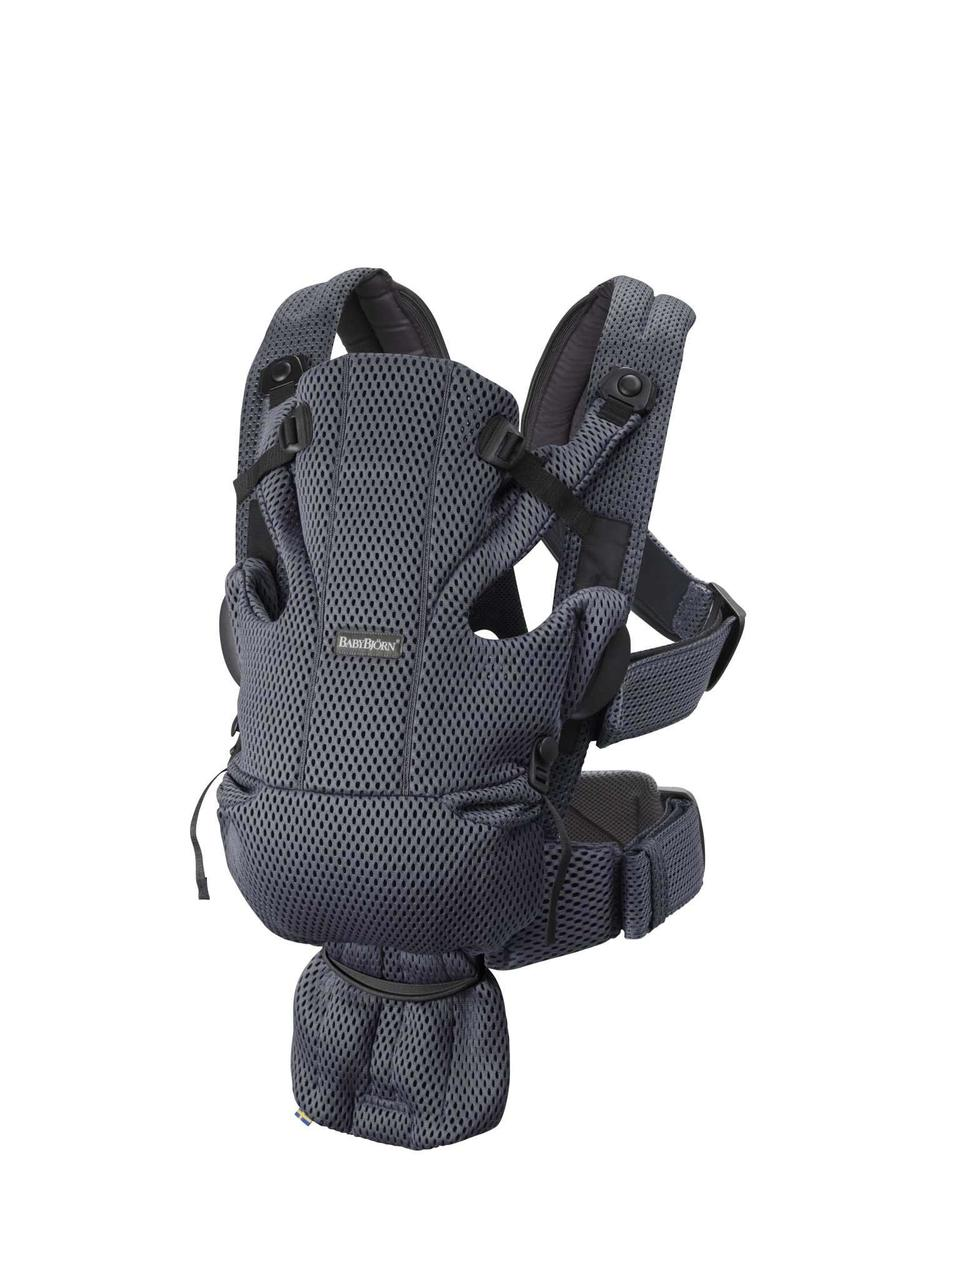 Рюкзак-кенгуру BabyBjorn Baby Carrier Move 3D Mesh